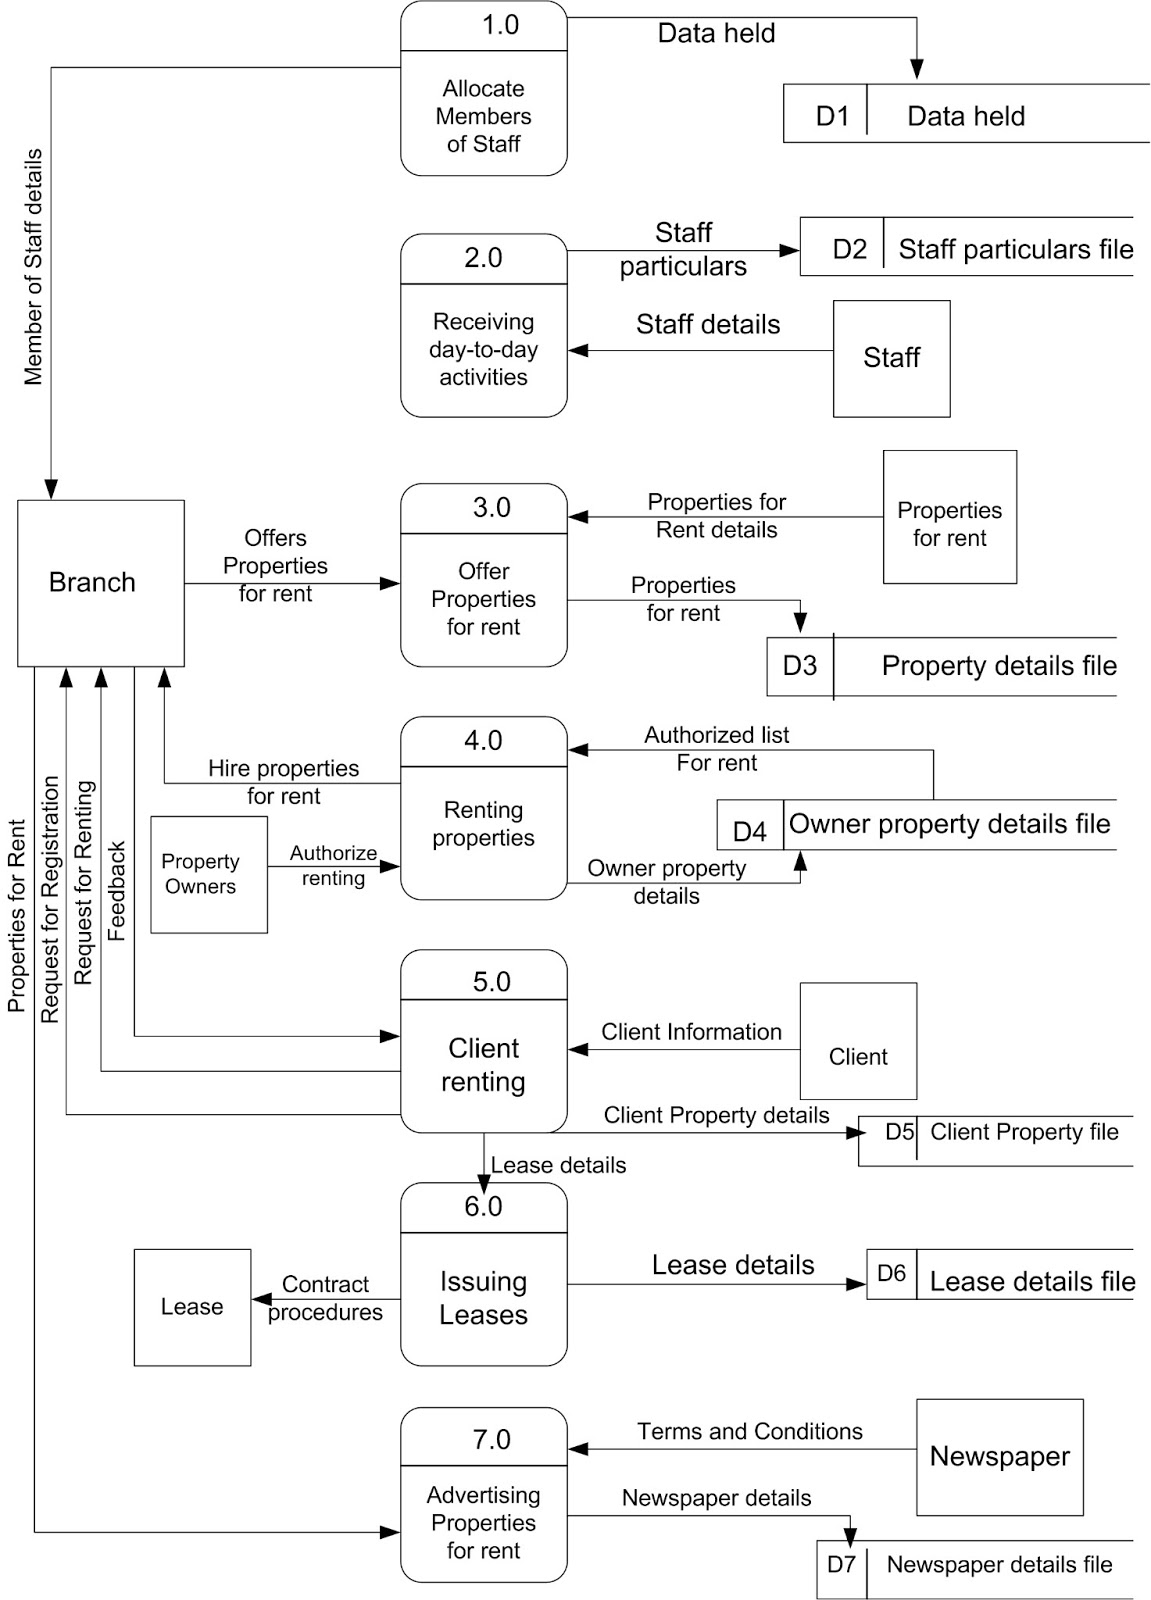 hight resolution of a level 0 data flow diagram dfd for proposed system for dreamhome case study